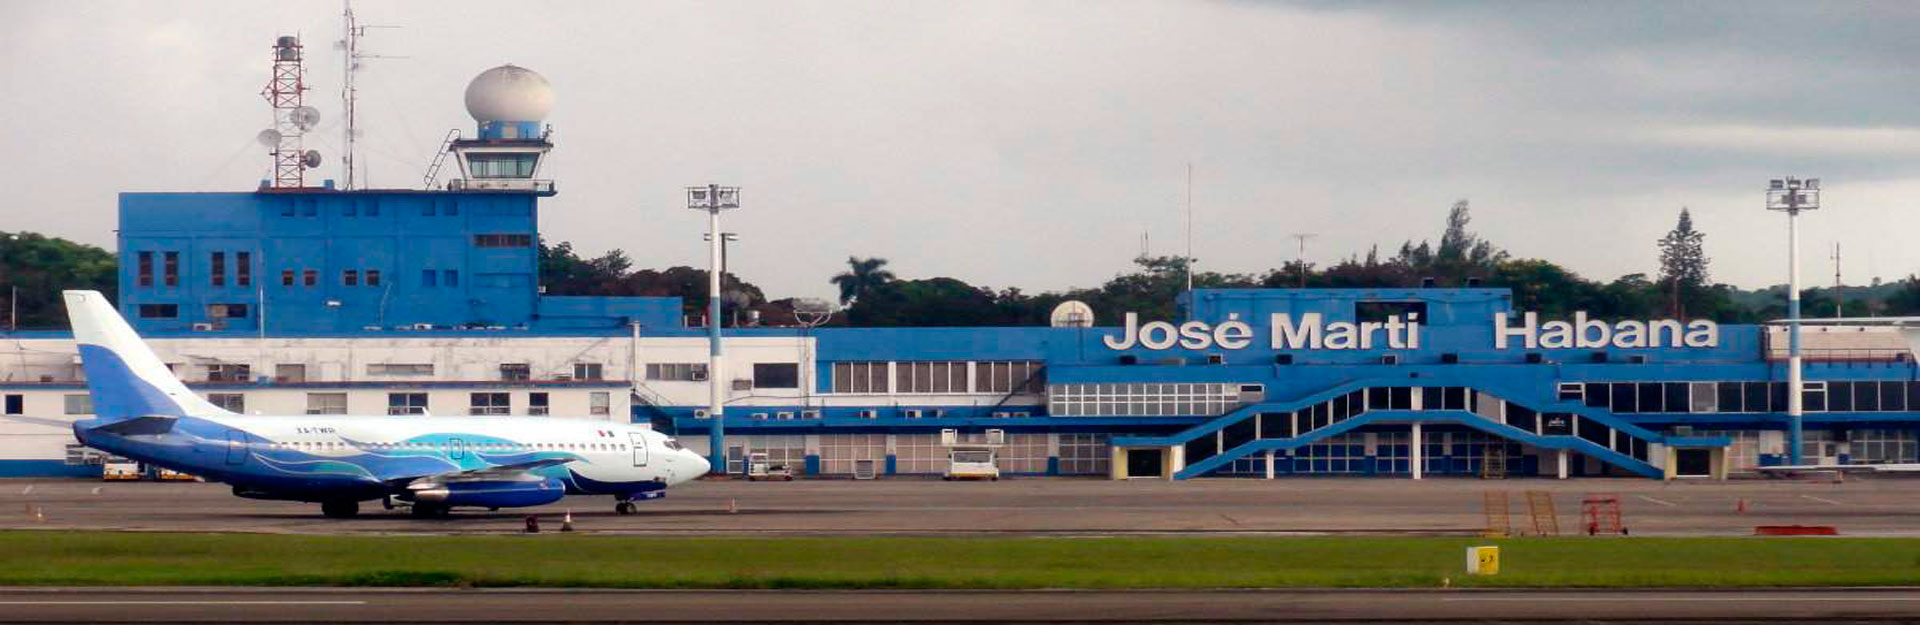 Jose Marti National Airport, Cuba Travel